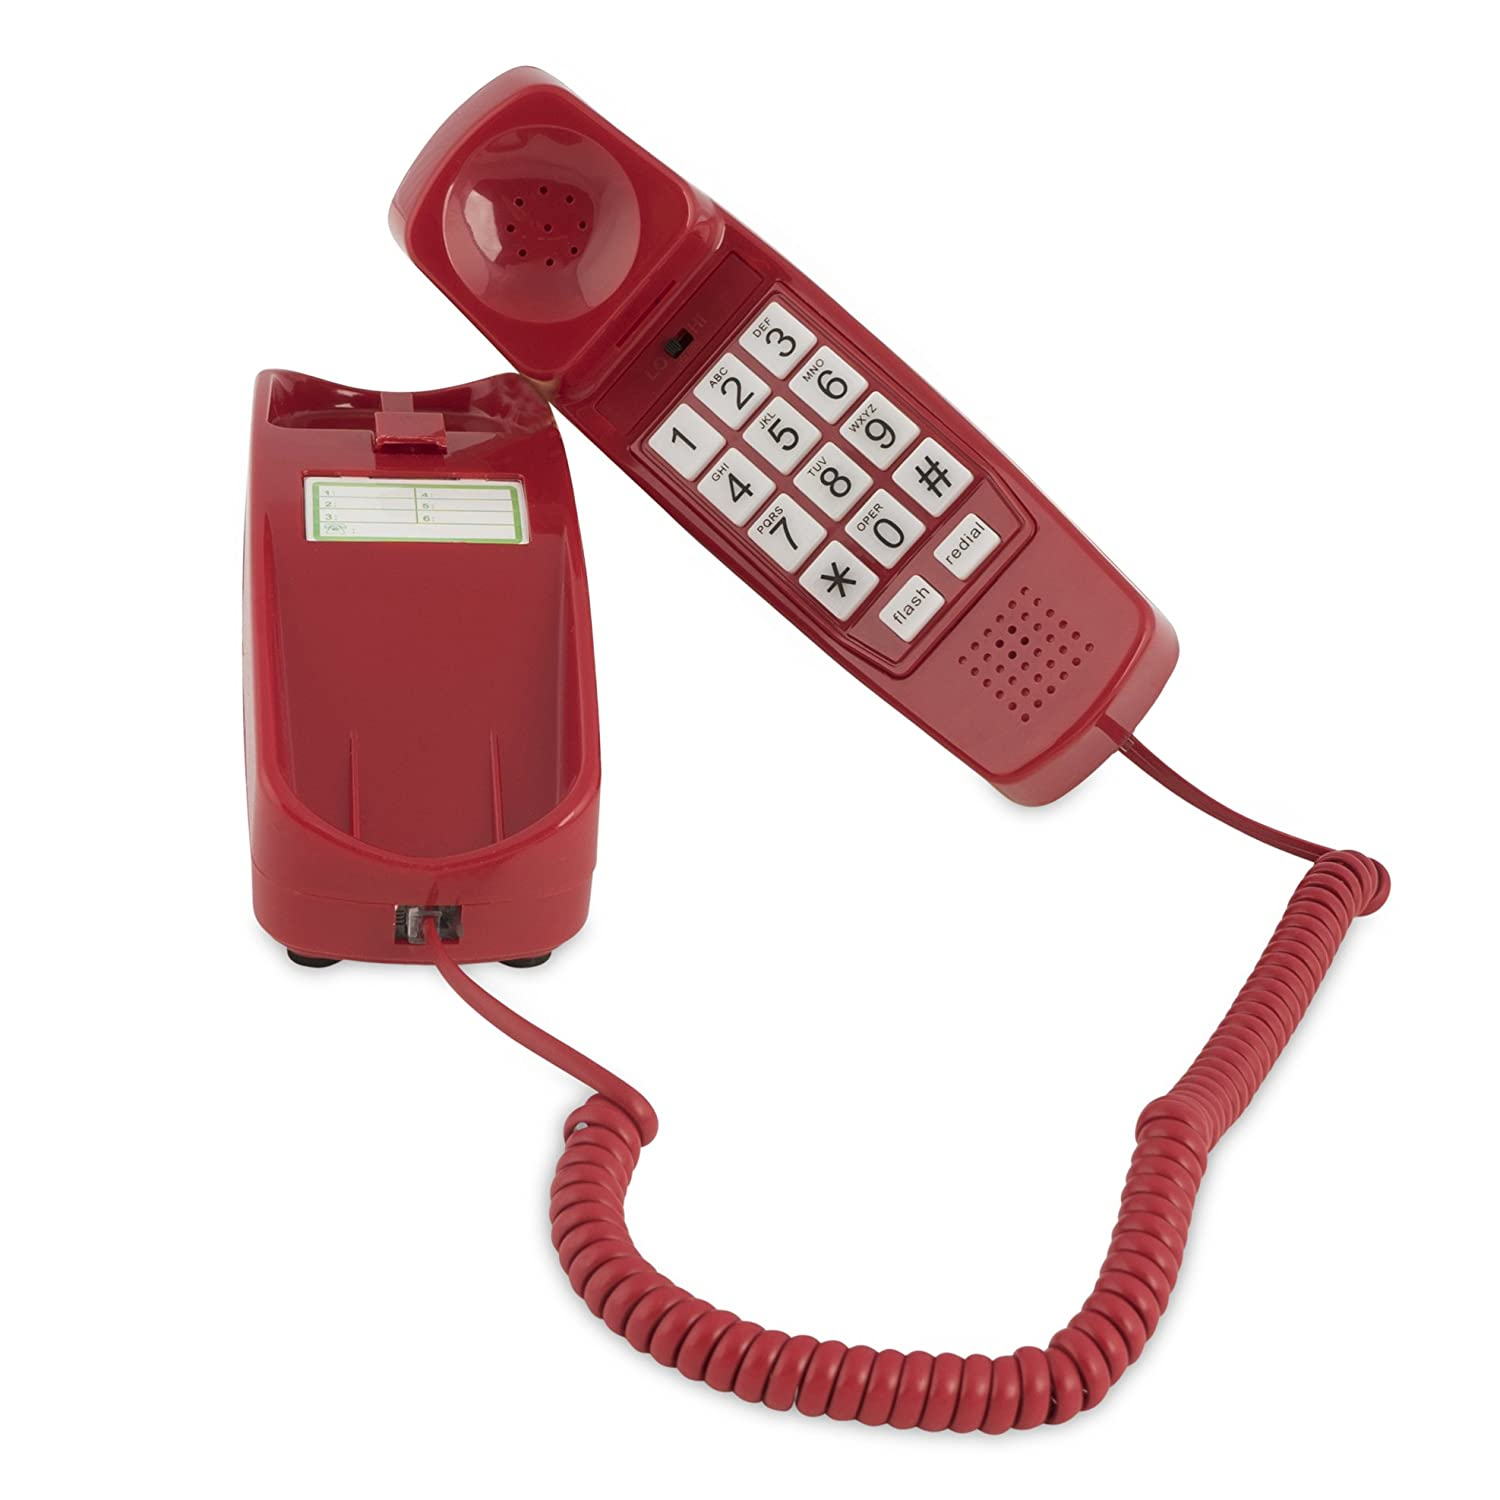 Trimline Corded Phone - Phones For Seniors - Phone for hearing impaired - Crimson Red - Retro Novelty Telephone - An Improved Version of the Princess Phones in 1965 - Style Big Button